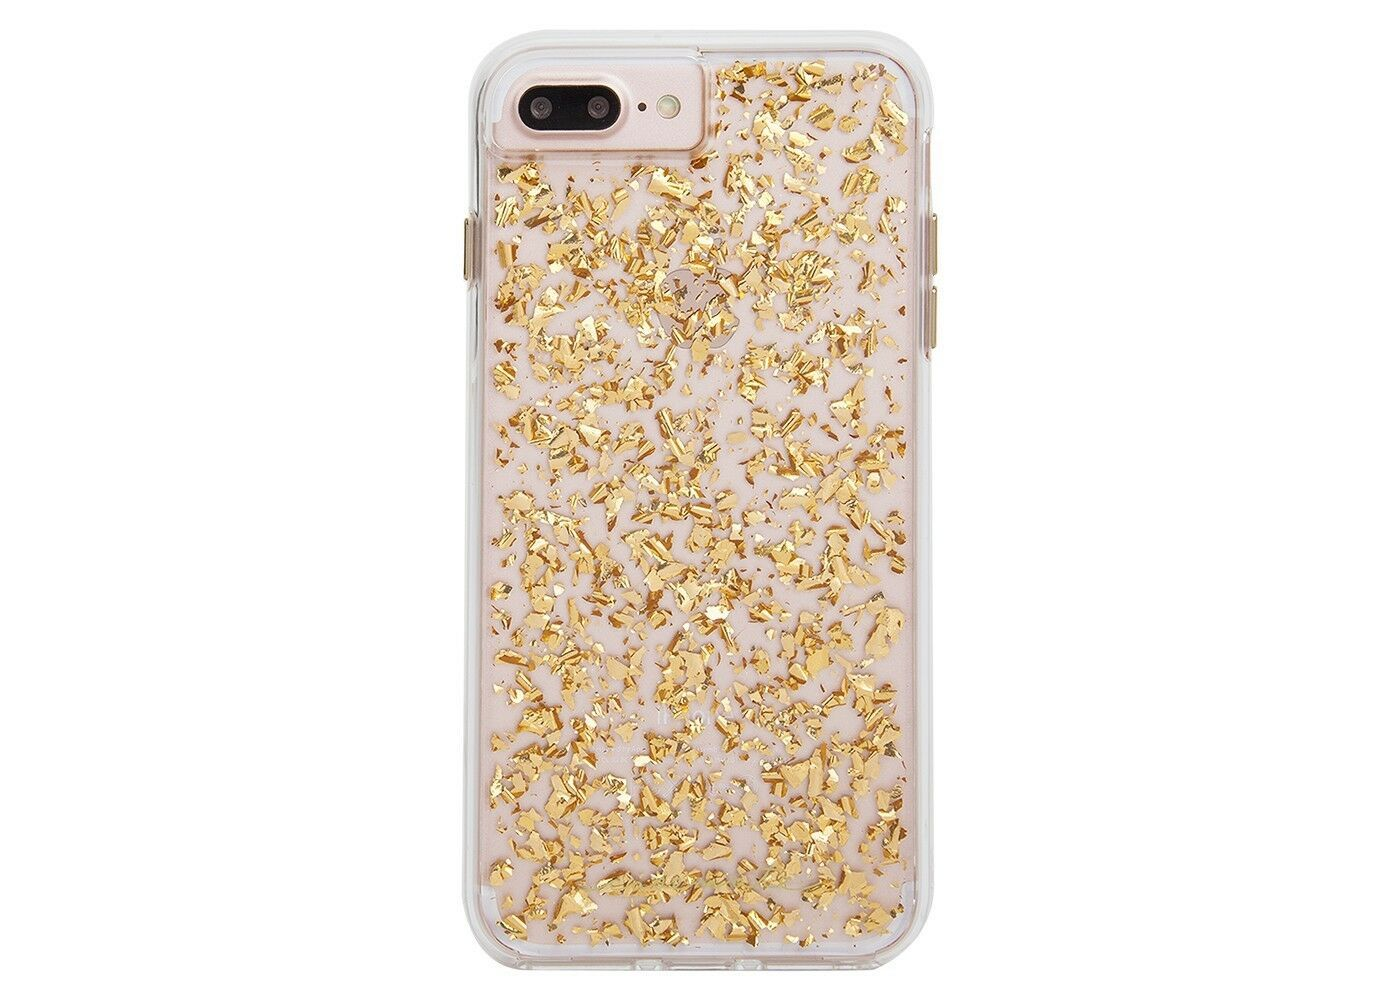 Case-Mate iPhone 8 Plus/7 Plus/6s Plus/6 Plus Case Karat - Gold